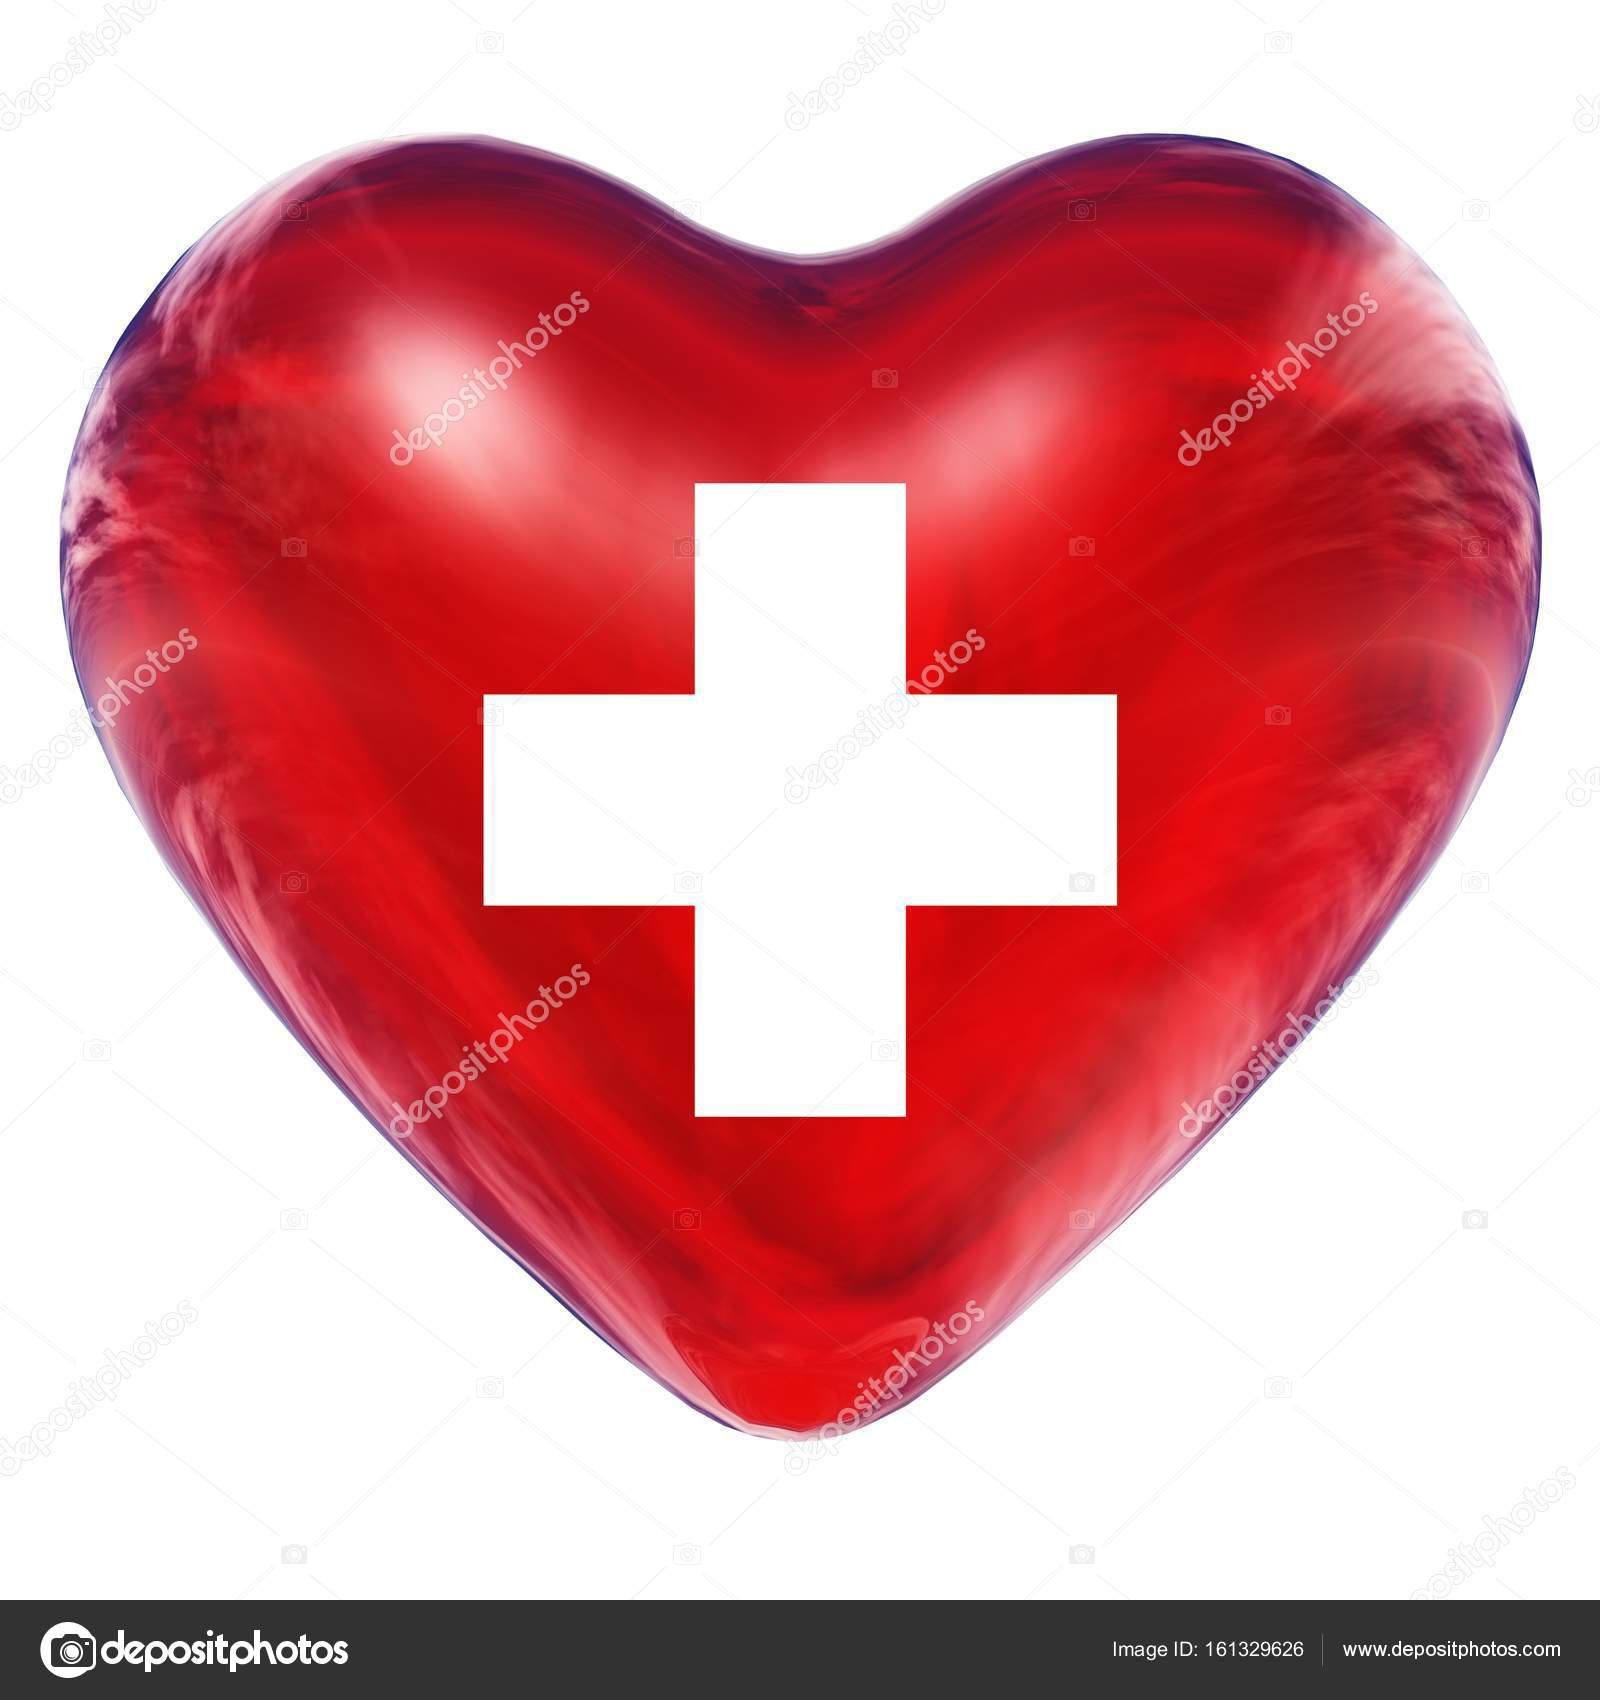 3d heart with a cross sign stock photo design36 161329626